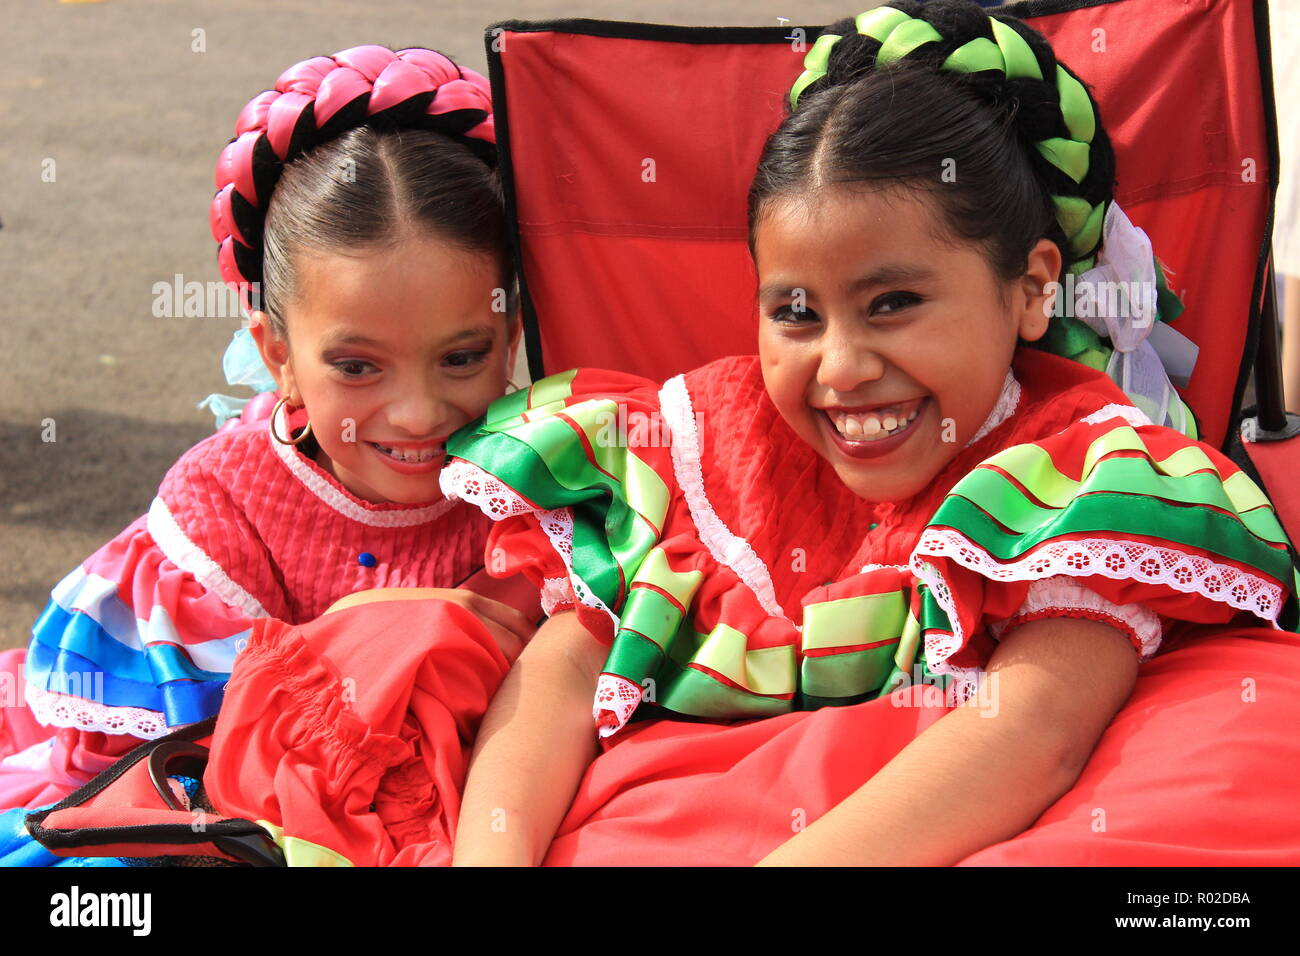 40de04bcfec Young girls in traditional Mexican dresses have fun while they wait for  their performance